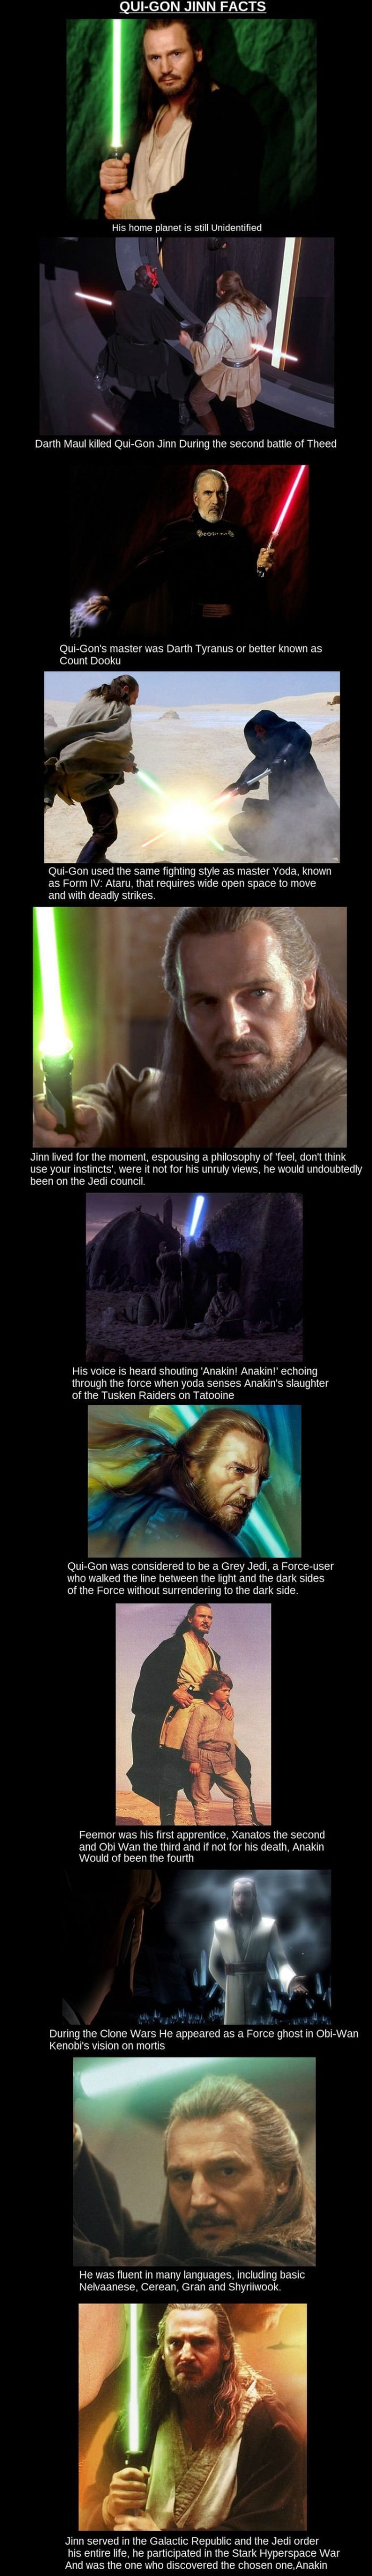 Qui-Gon-Jinn facts